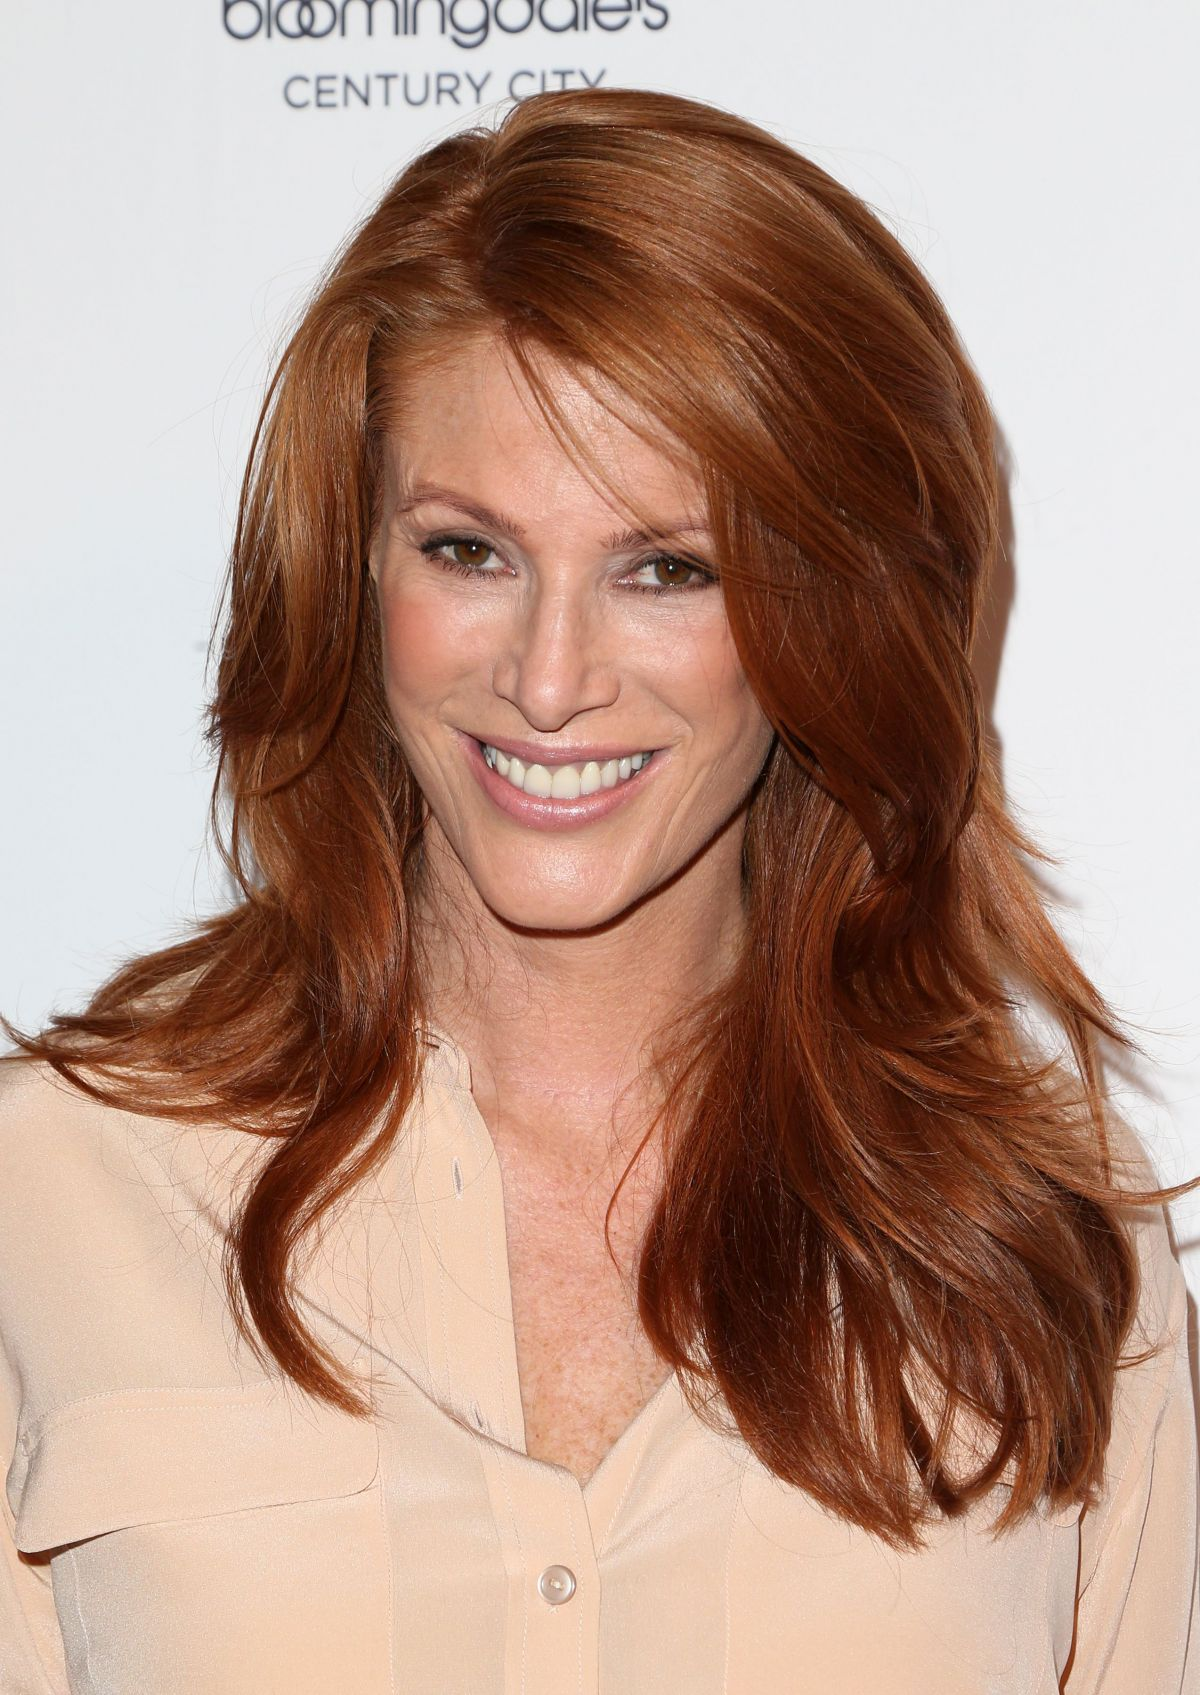 Angie Everhart | Angie Everhart | Pinterest | Angie